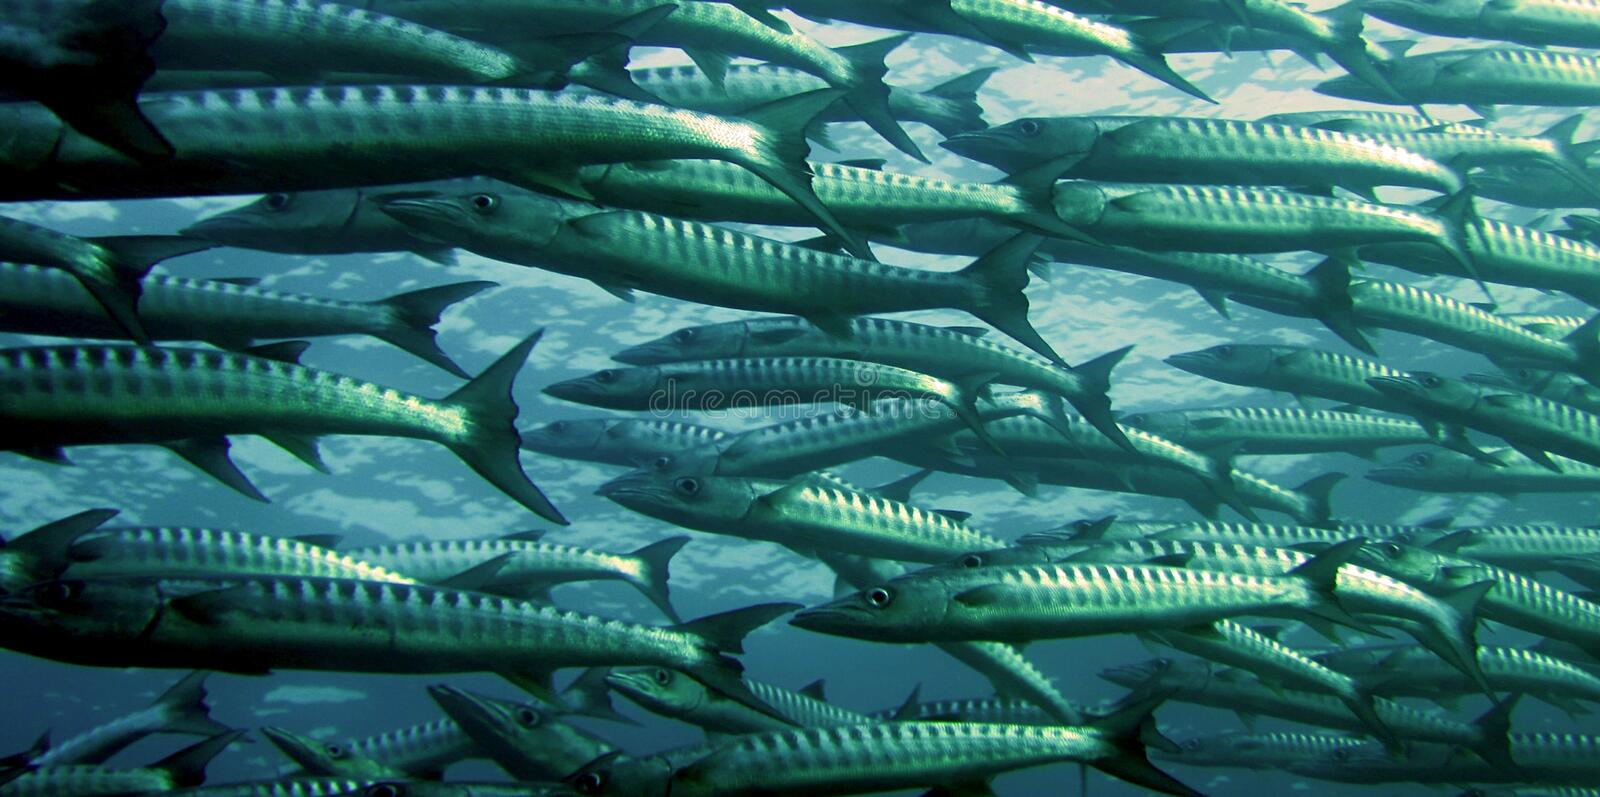 Gray And Silver School Of Fish Underwater Photography Free Public Domain Cc0 Image